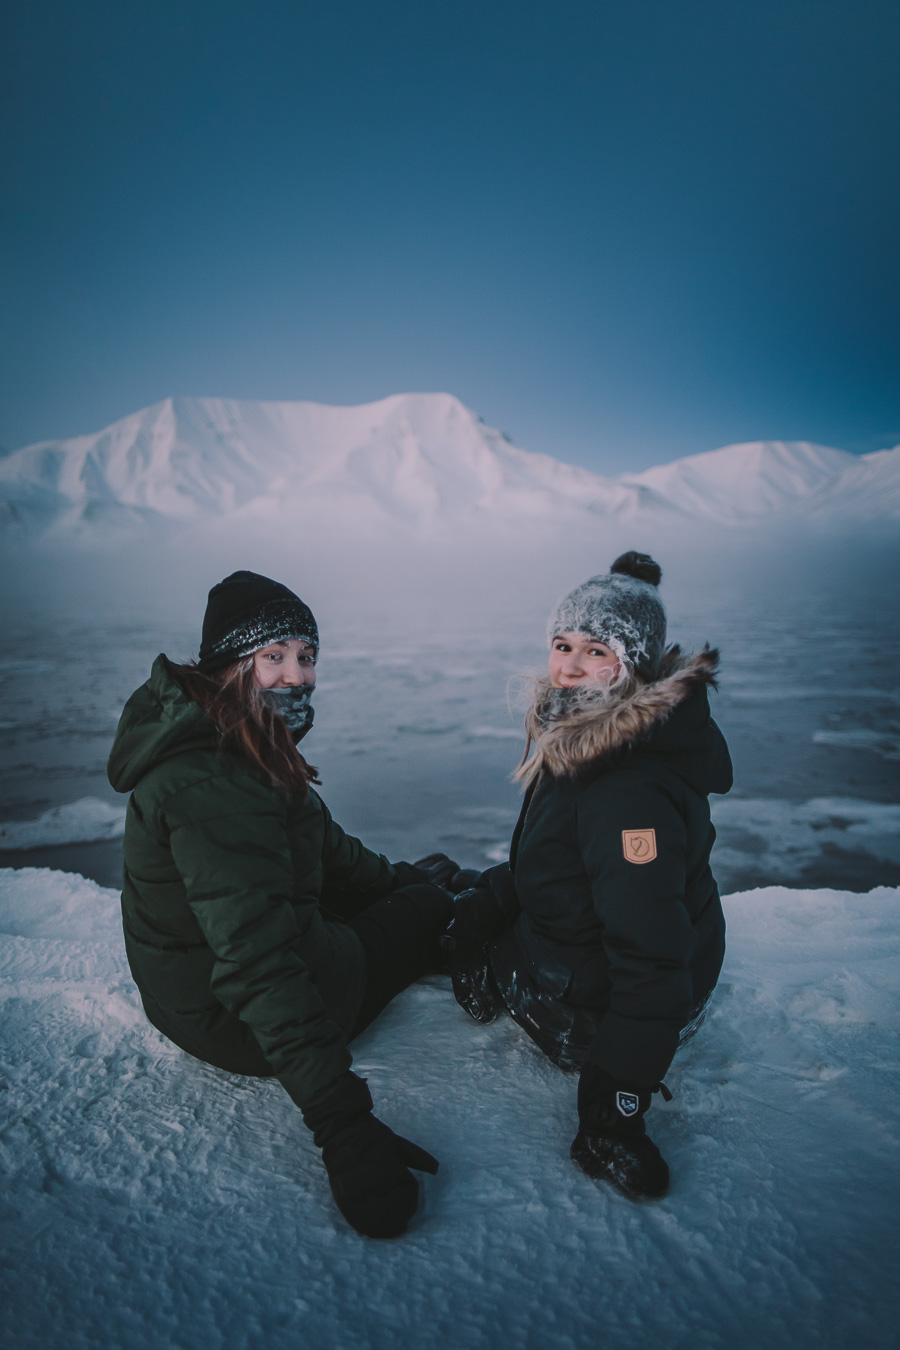 Girls smiling with an icy backdrop